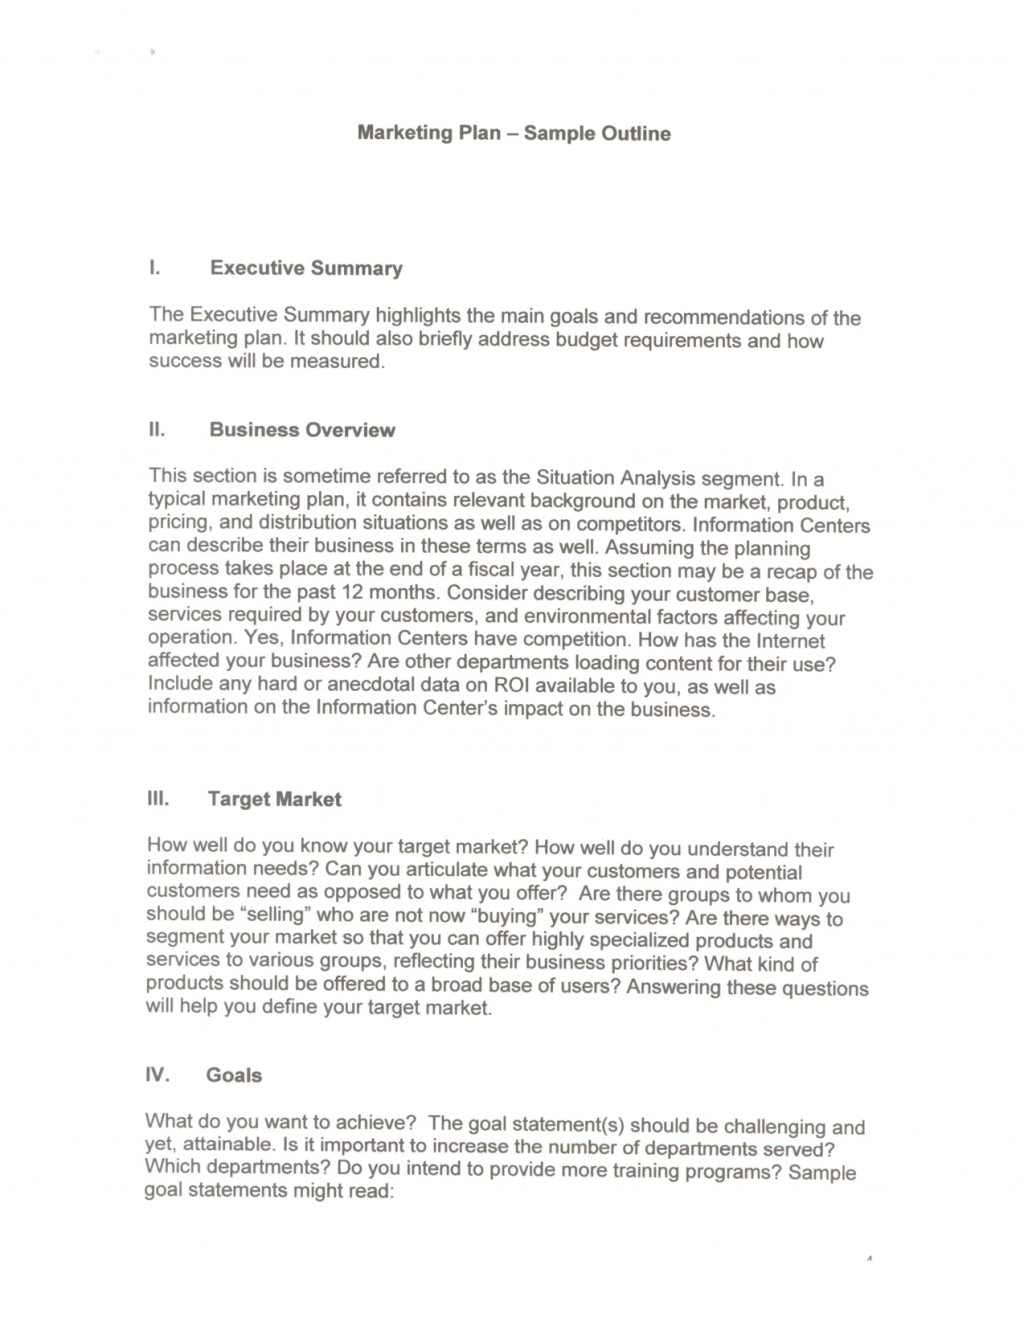 015 Research Paper Marketing Plan Executive Summary 384040 Of Fantastic A Example Large